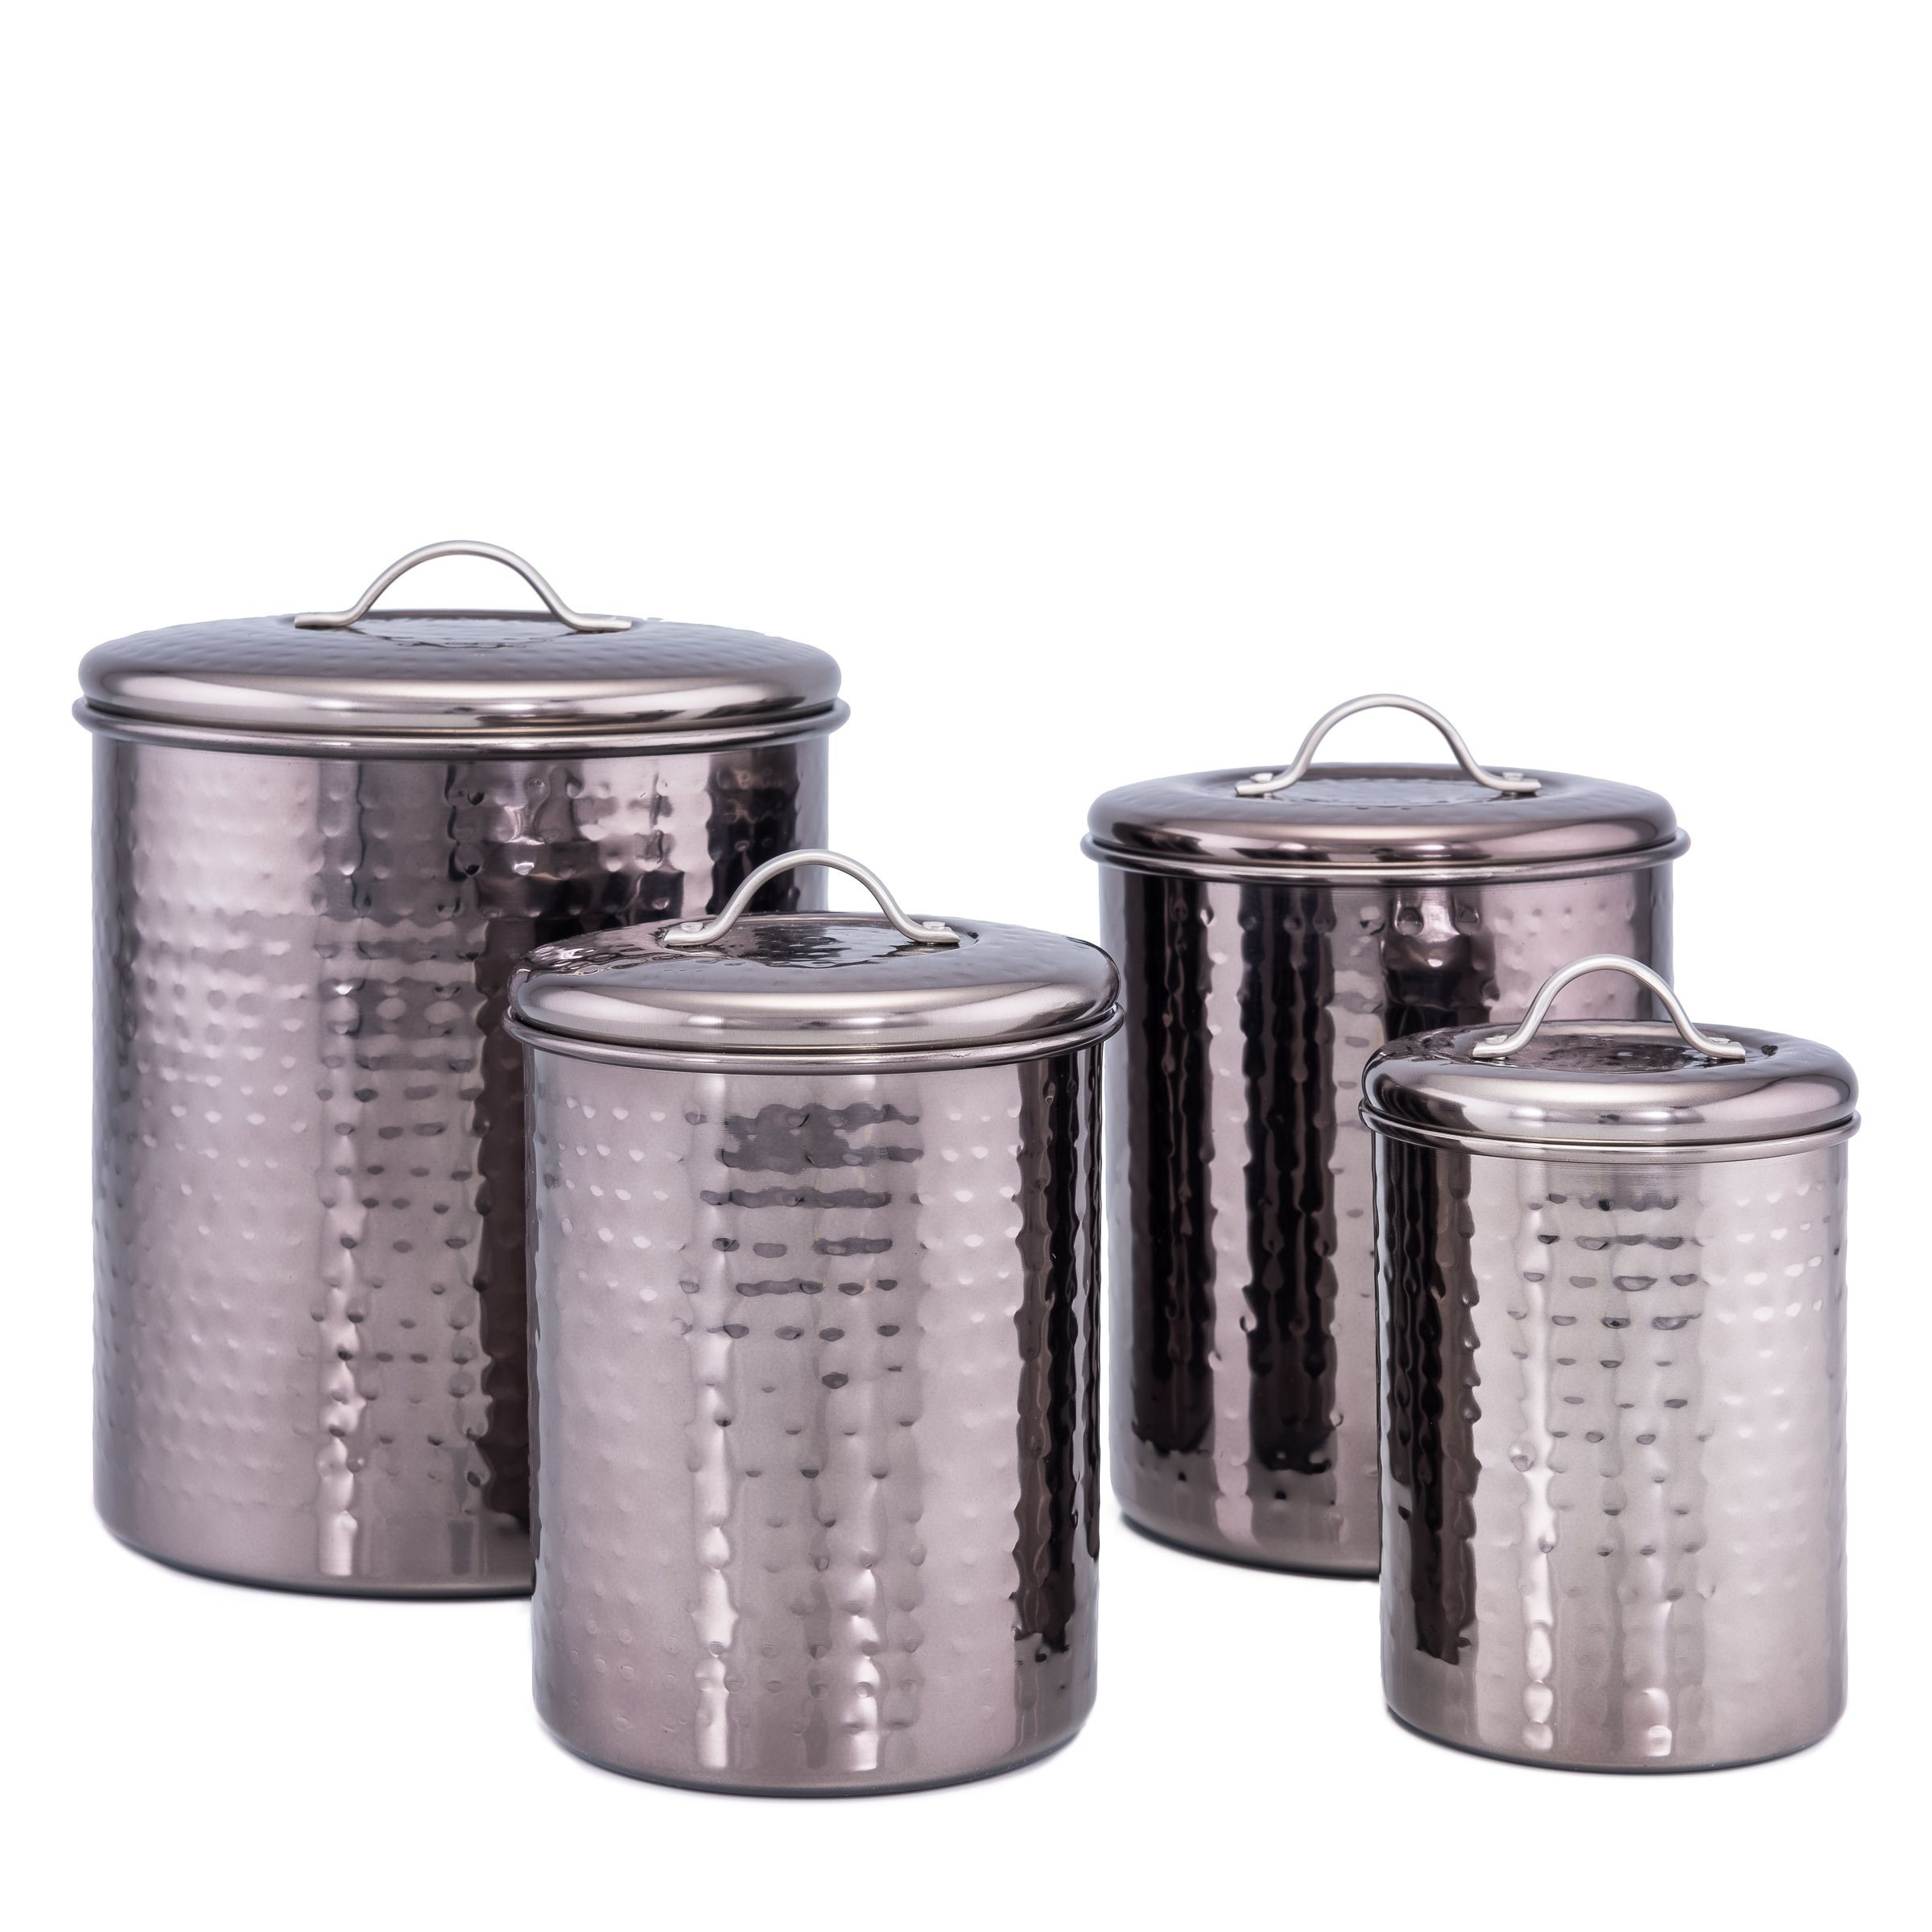 large kitchen canisters old dutch international 2043 black nickel hammered canisters with fresh seal covers set of 4 8625